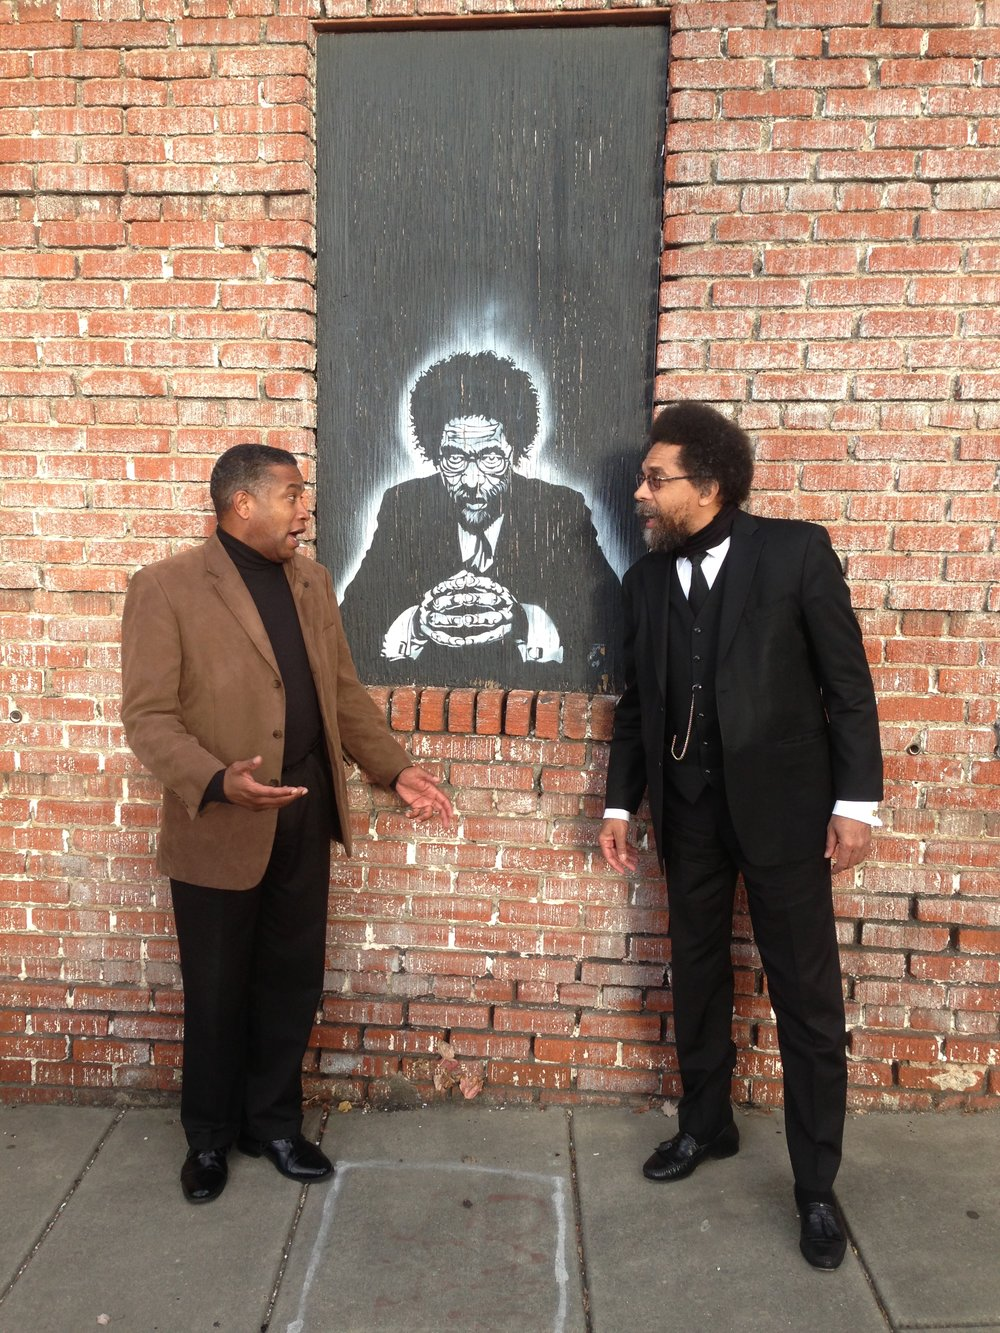 With Cornel West in downtown Asheville